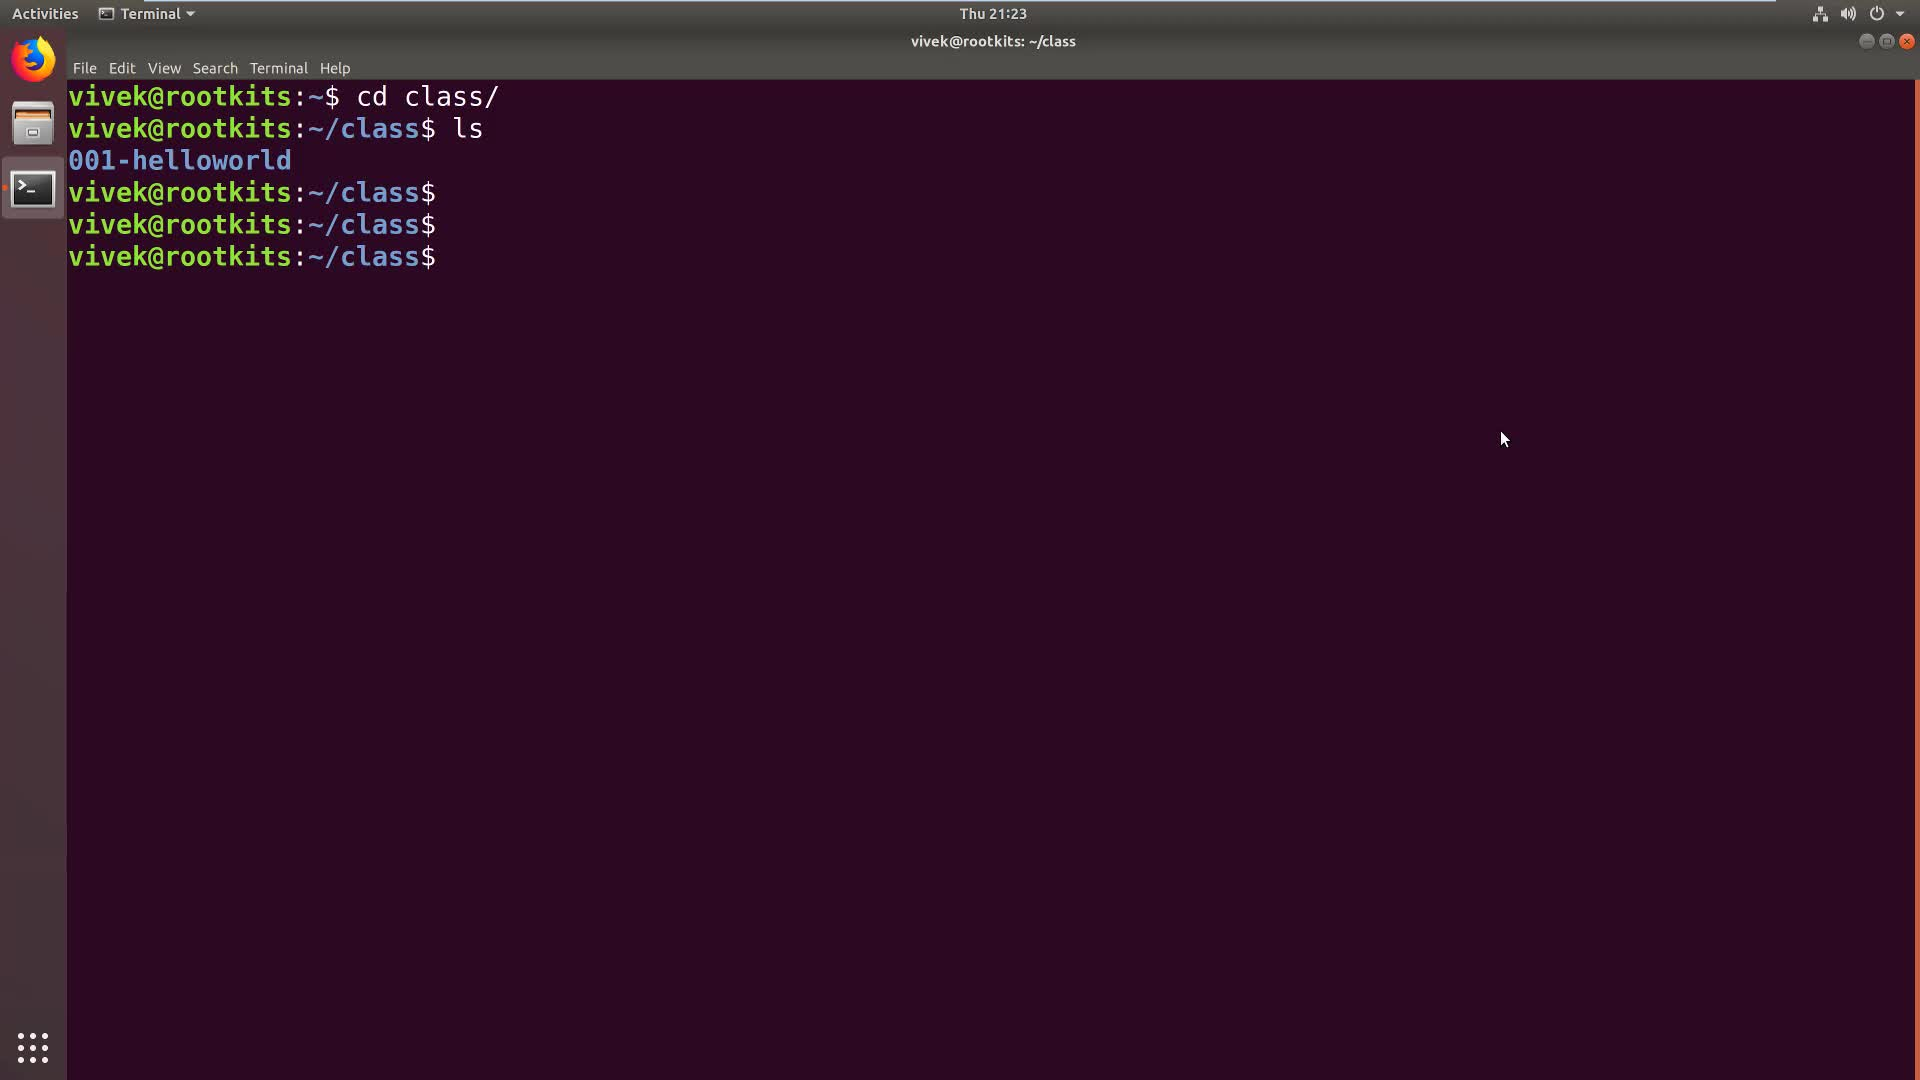 Kernel Module Basics: Messages with File, Function and Line Info